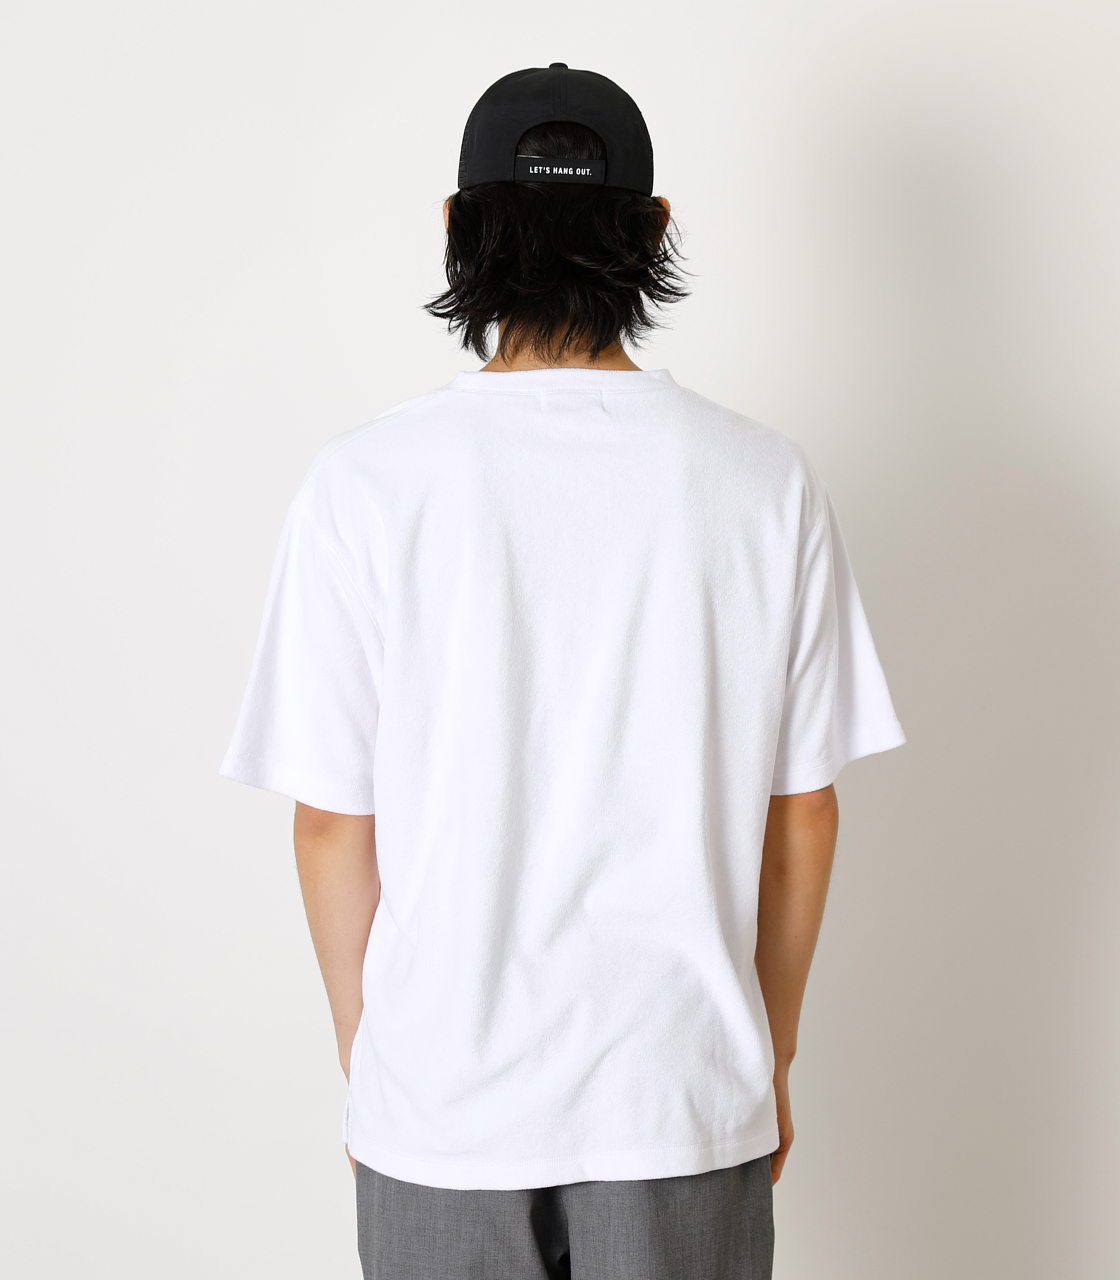 LOOSE PILE TOPS/ルーズパイルトップス 詳細画像 WHT 6